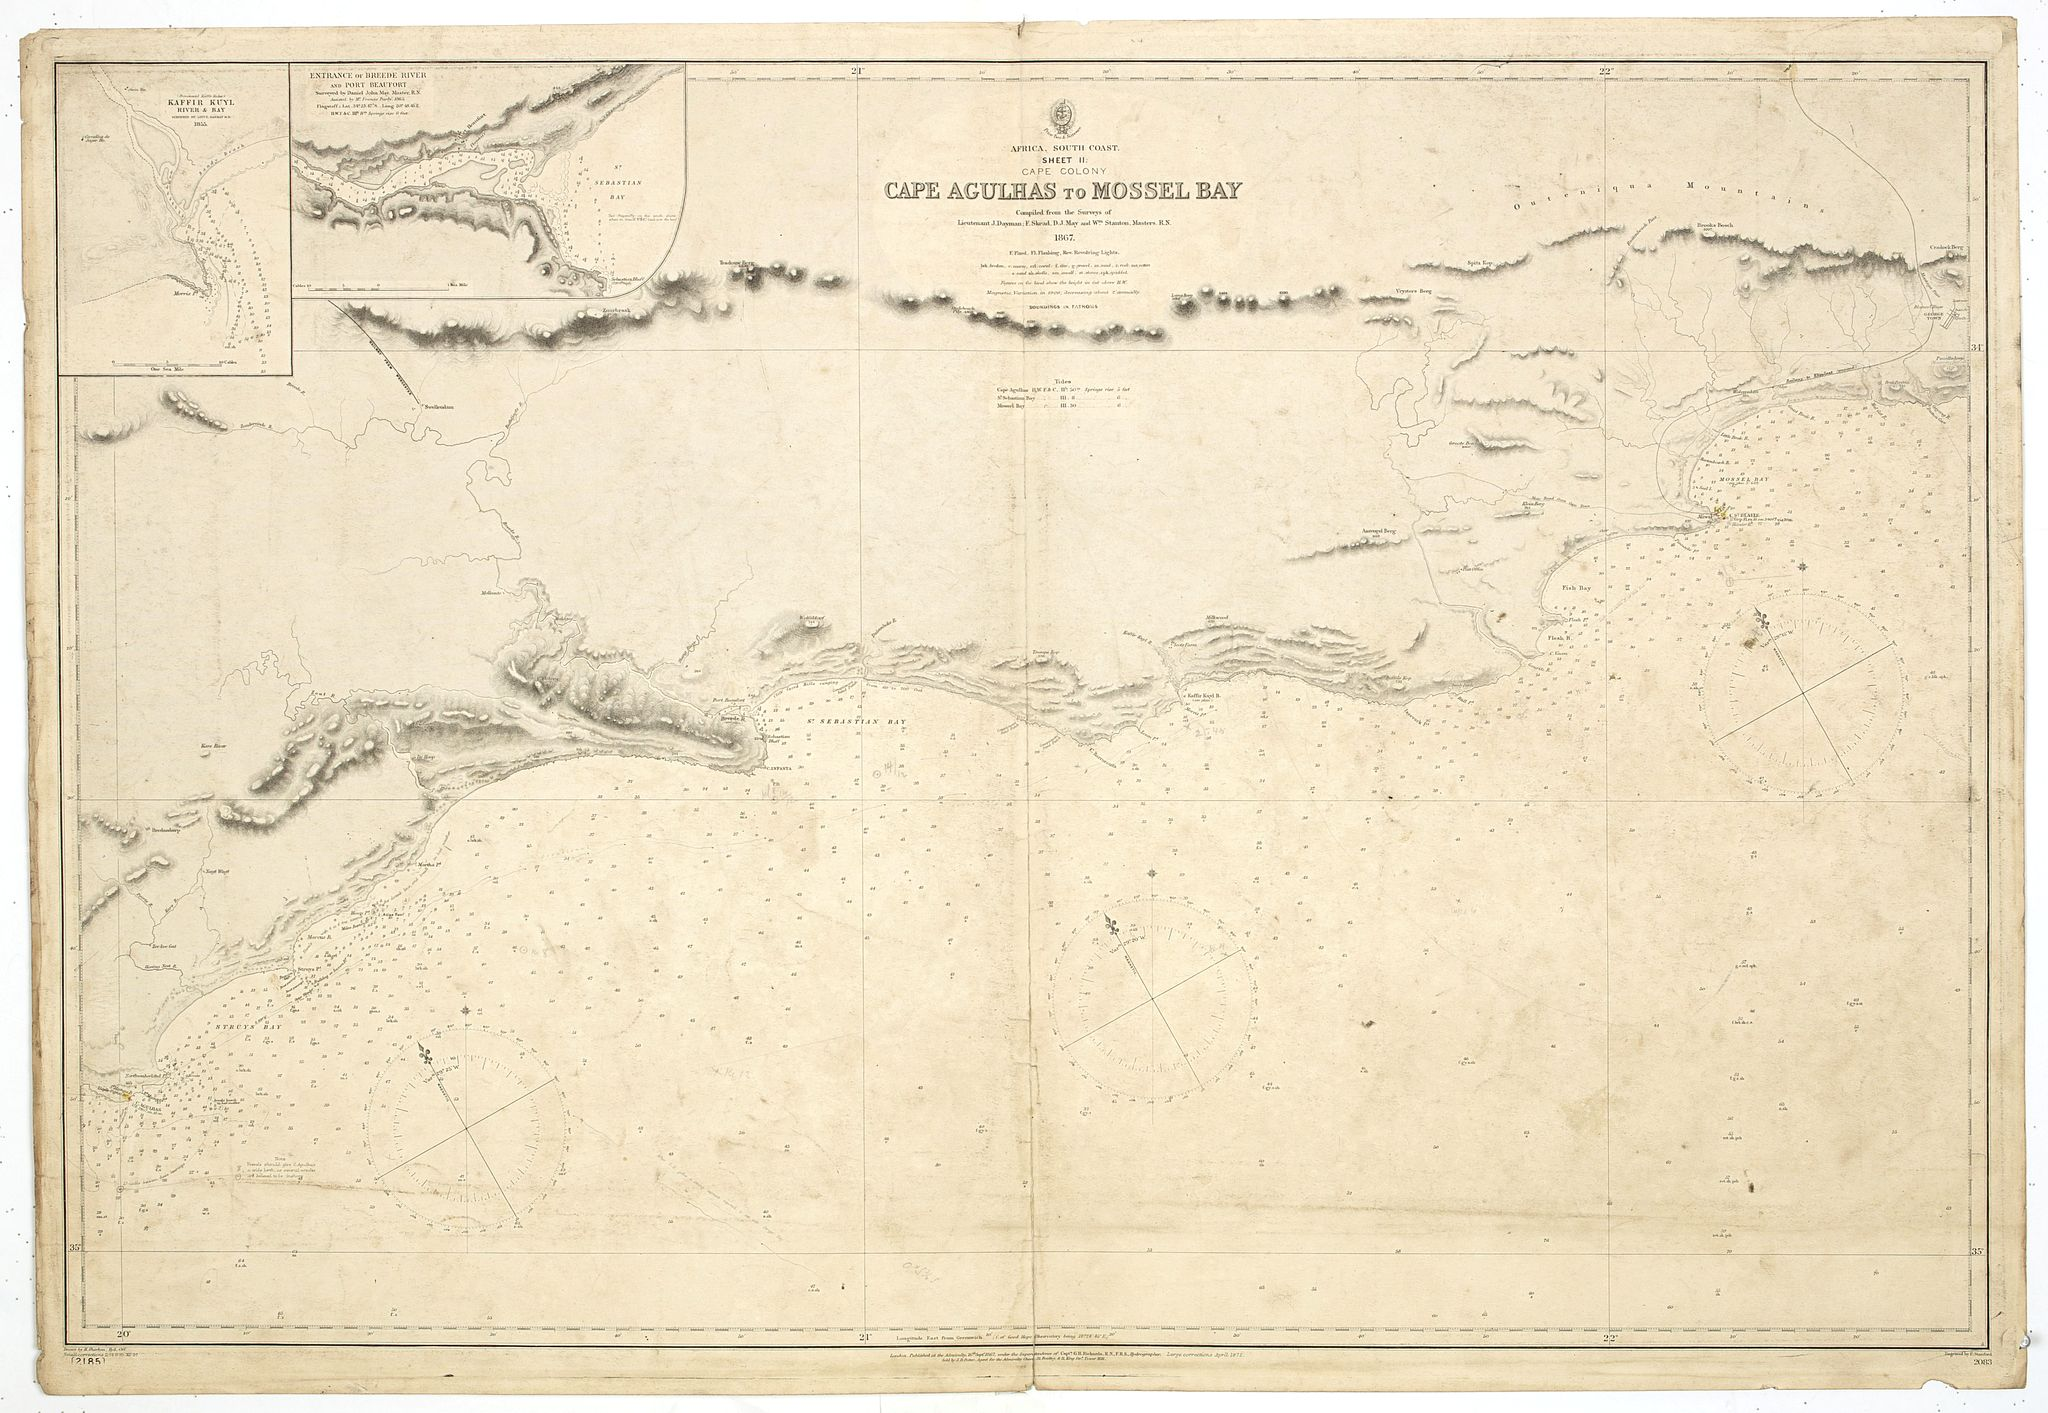 BRITISH ADMIRALTY CHART. -  Africa south coast sheet II Cape Colony Cape Agulhas to Mossel Bay compiled from the surveys of Lieutenant J Dayman 1867.